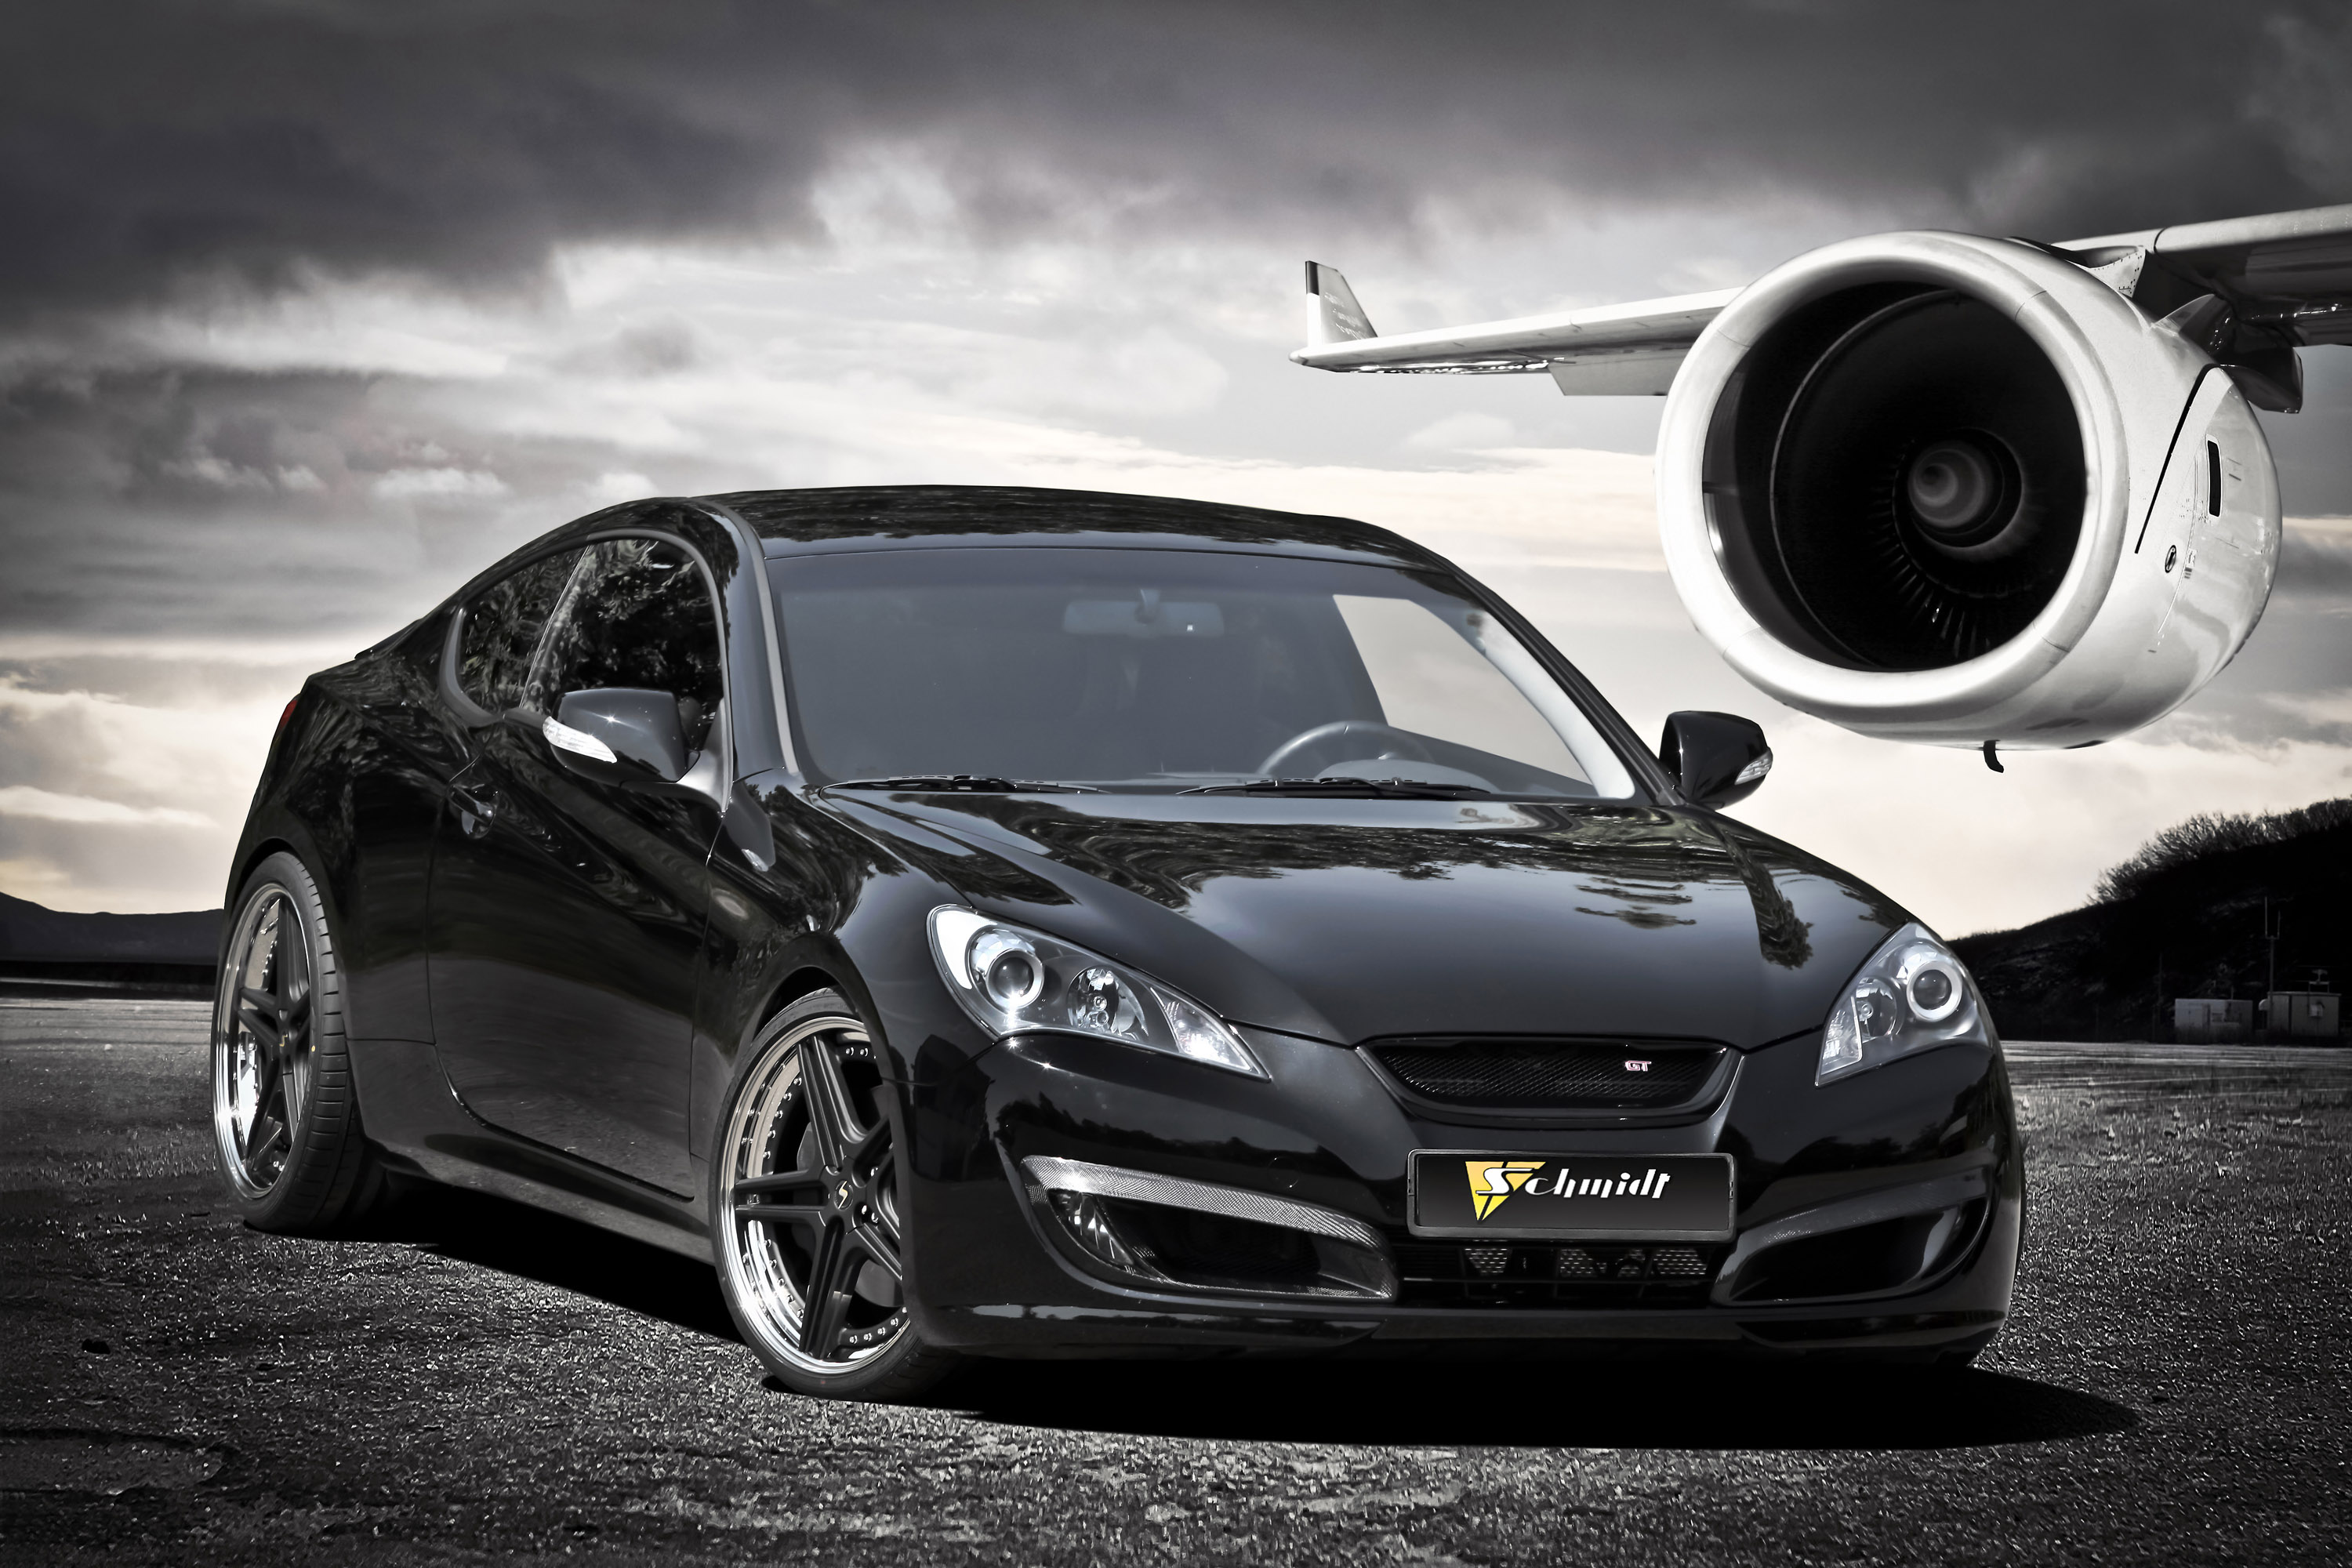 2012 Hyundai Genesis Coupe Project Panther By Schmidt